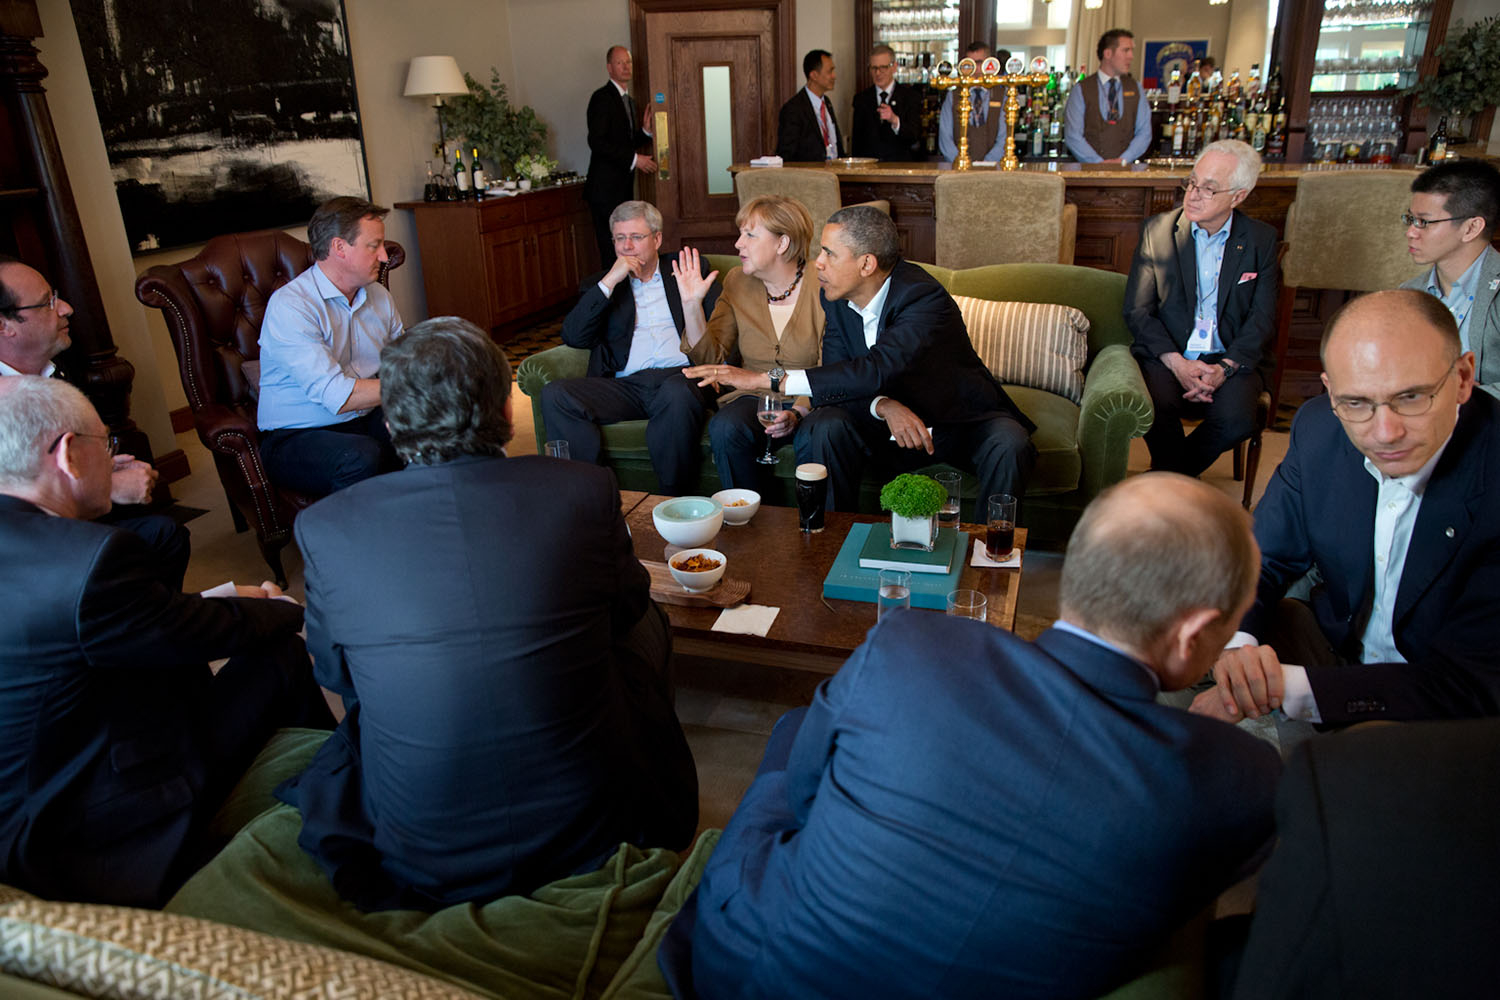 A photograph of a working dinner at the G8 summit in Enniskillen, Northern Ireland.